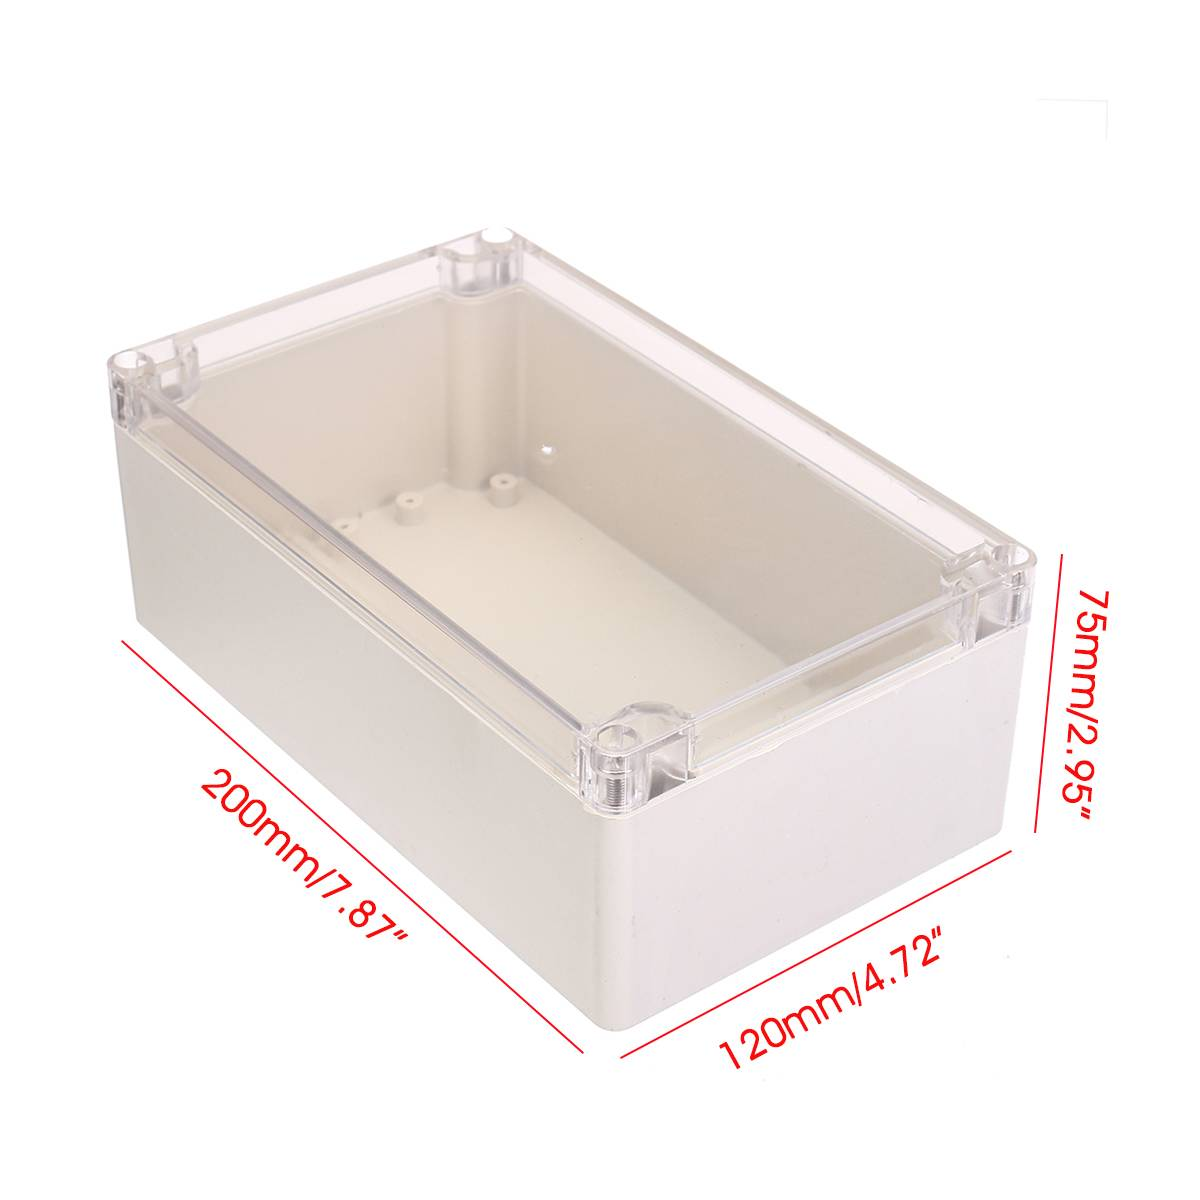 200*120*75mm Plastic Project Box Electronic Box Enclosure Waterproof Housing Case